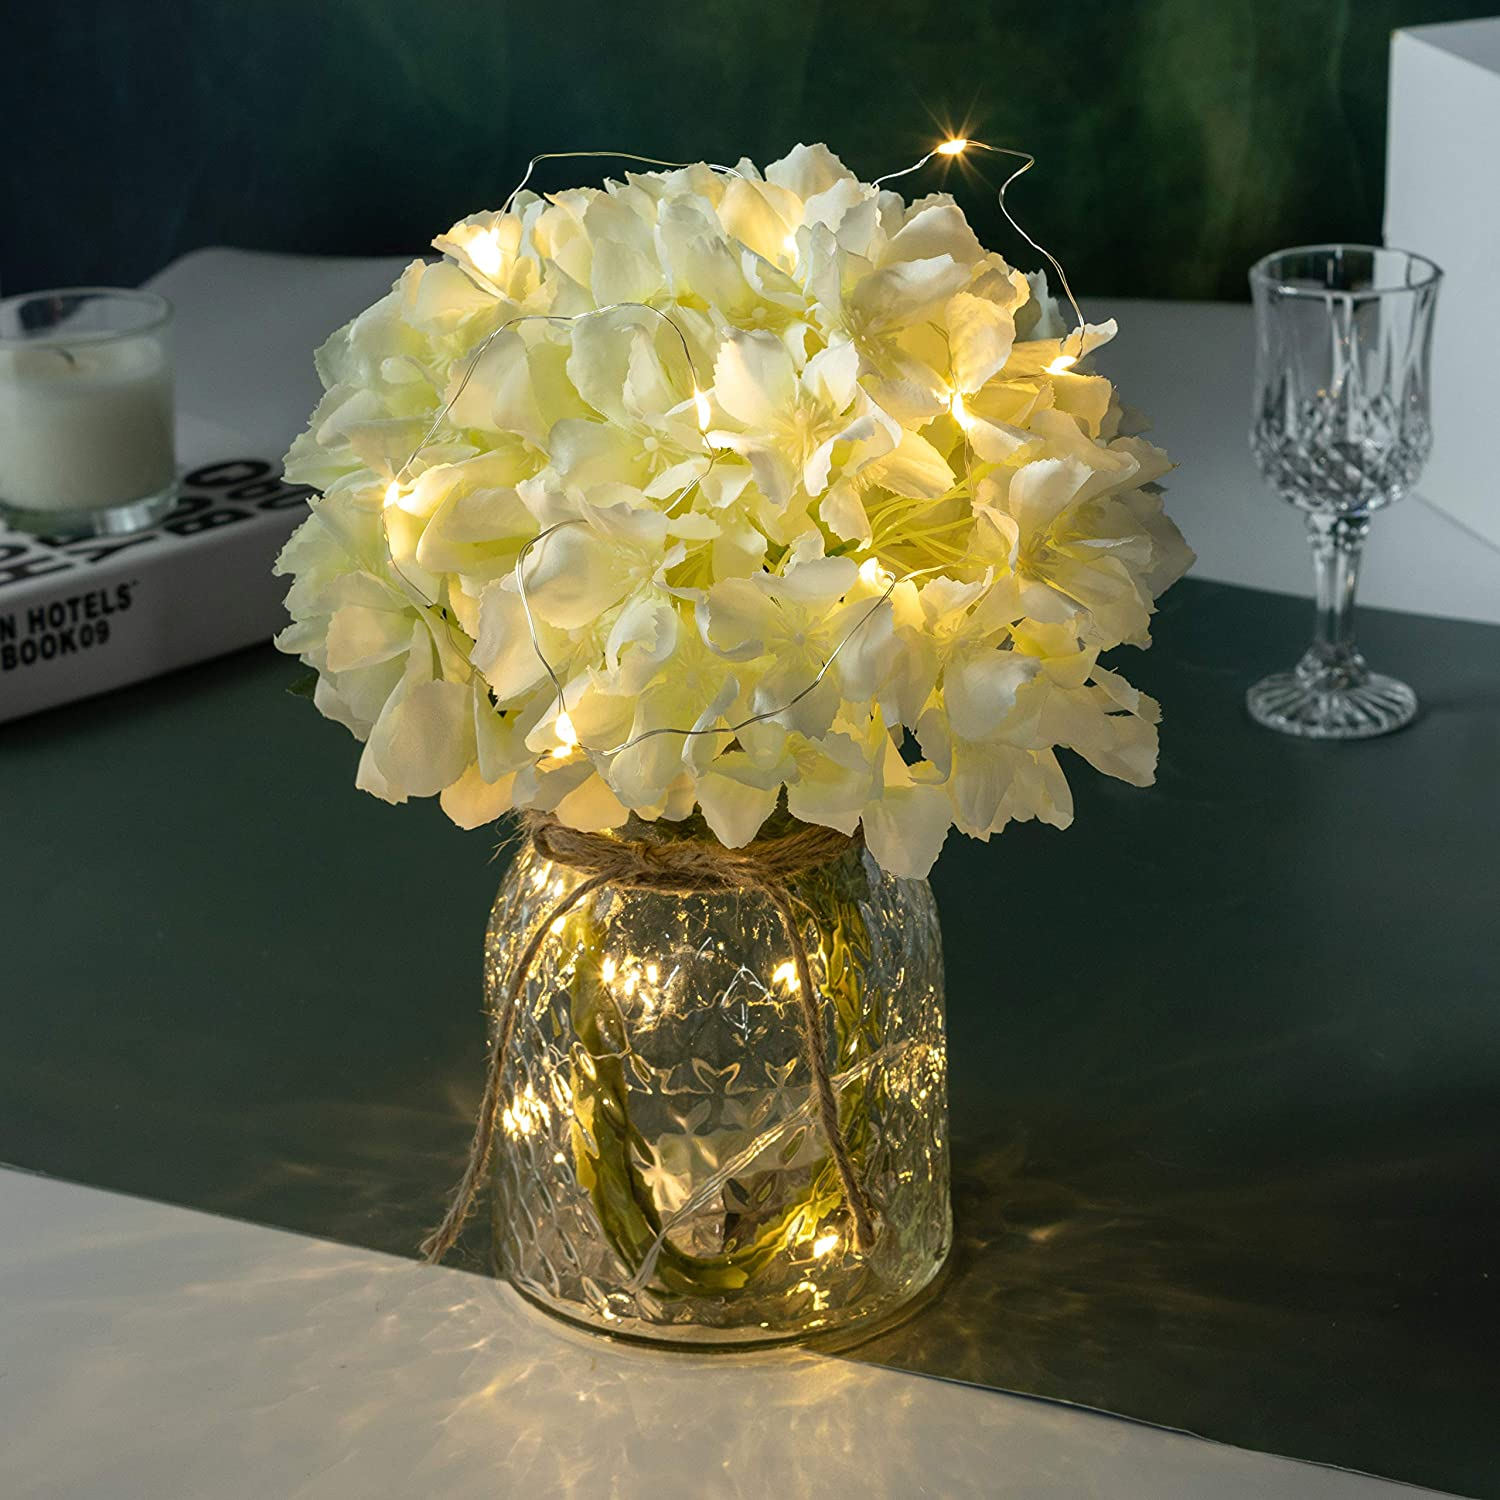 Artificial Led Hydrangeas Flowers With Glass Vase Flower Arrangement For Table Centerpiece Home Office Wedding Decoration Kitchen Dining